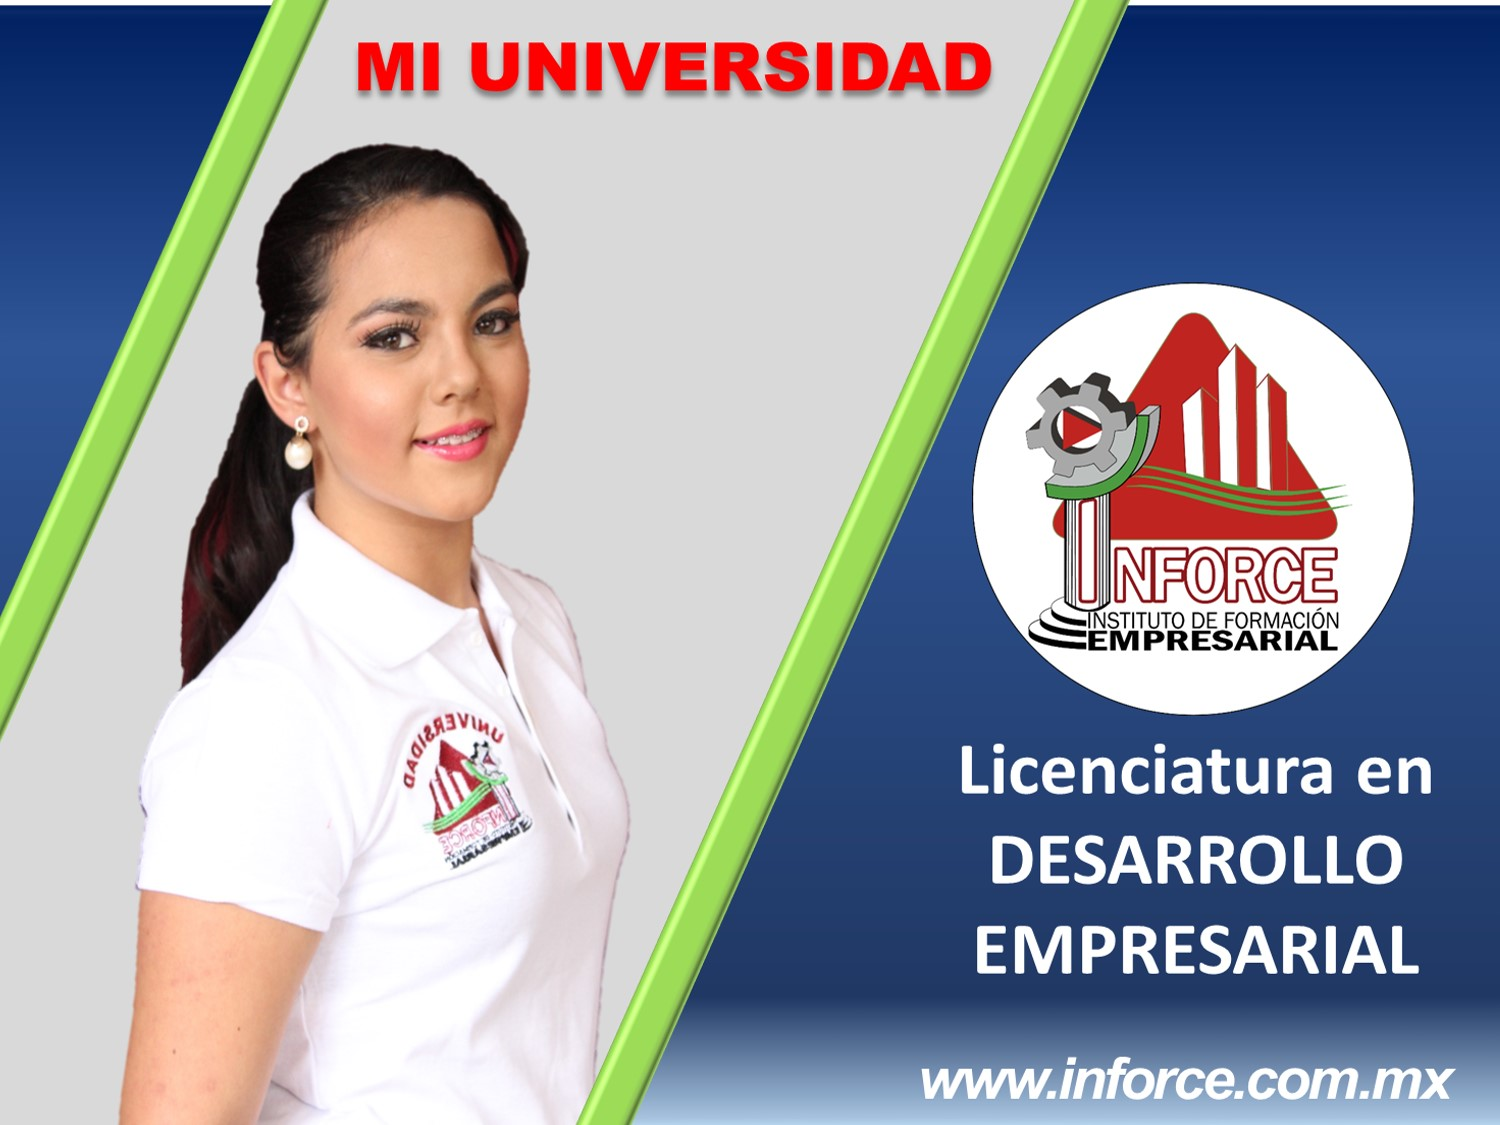 universidad-inforce-07.jpg